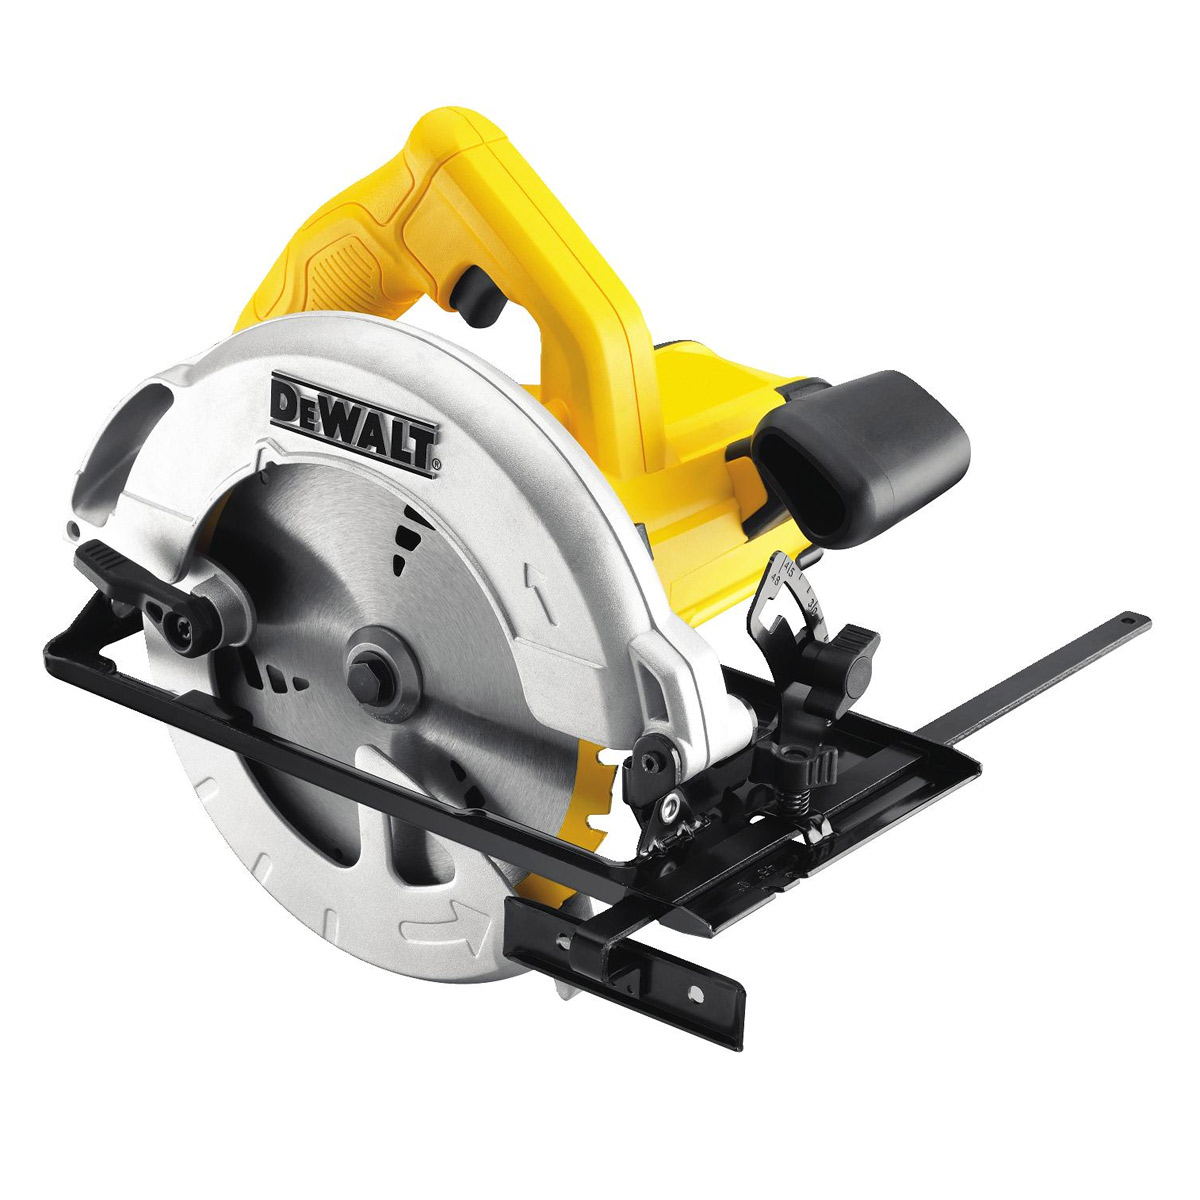 DEWALT DWE560 184MM CIRCULAR SAW 110V